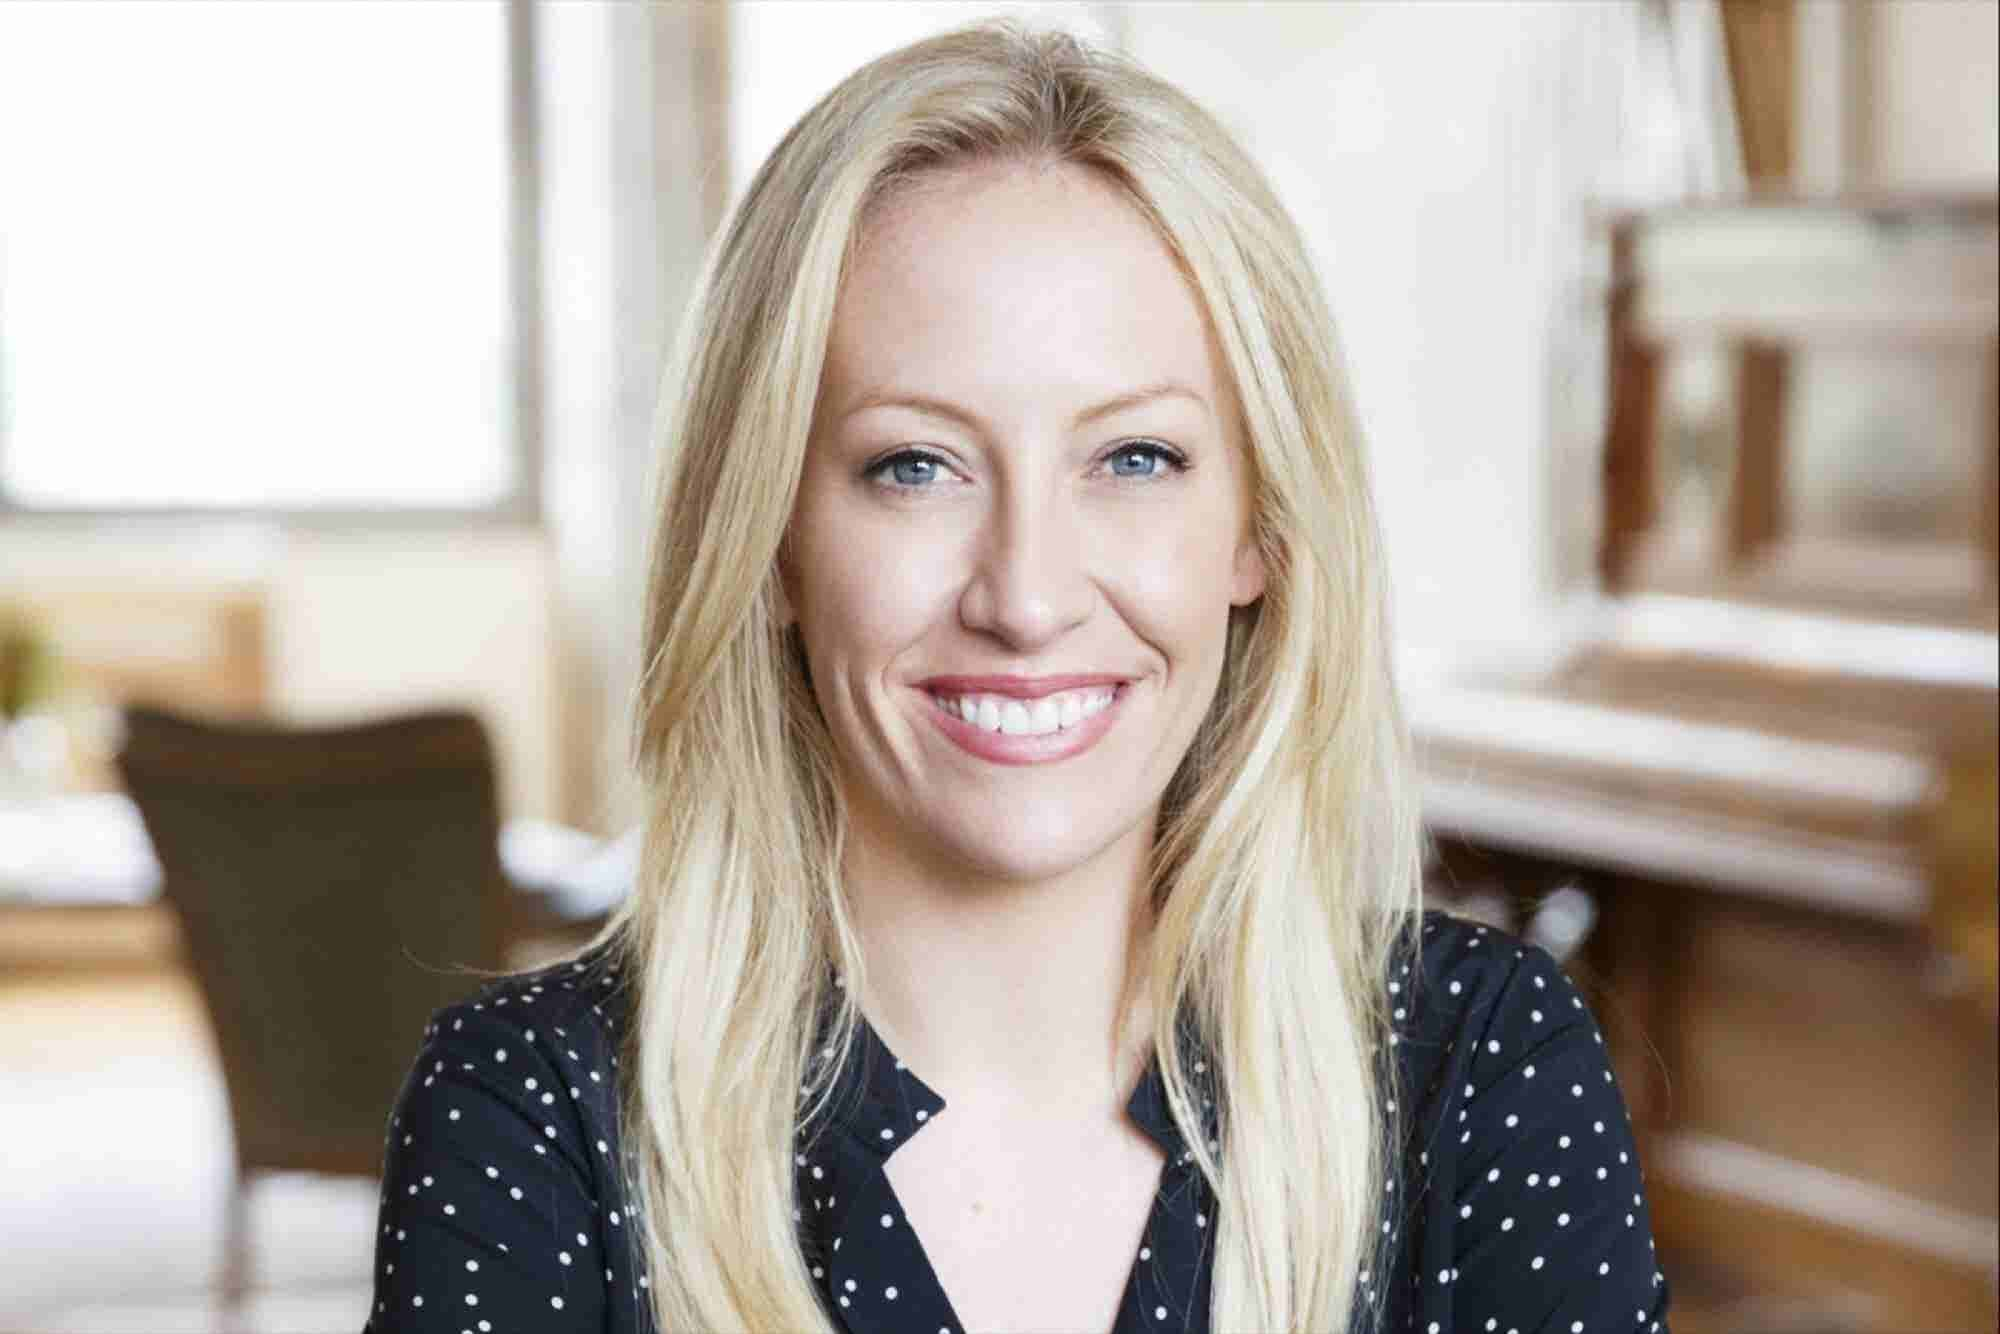 After a Decade in Business, This Founder Became CEO. Here is How She Tackles New Challenges With Conviction.